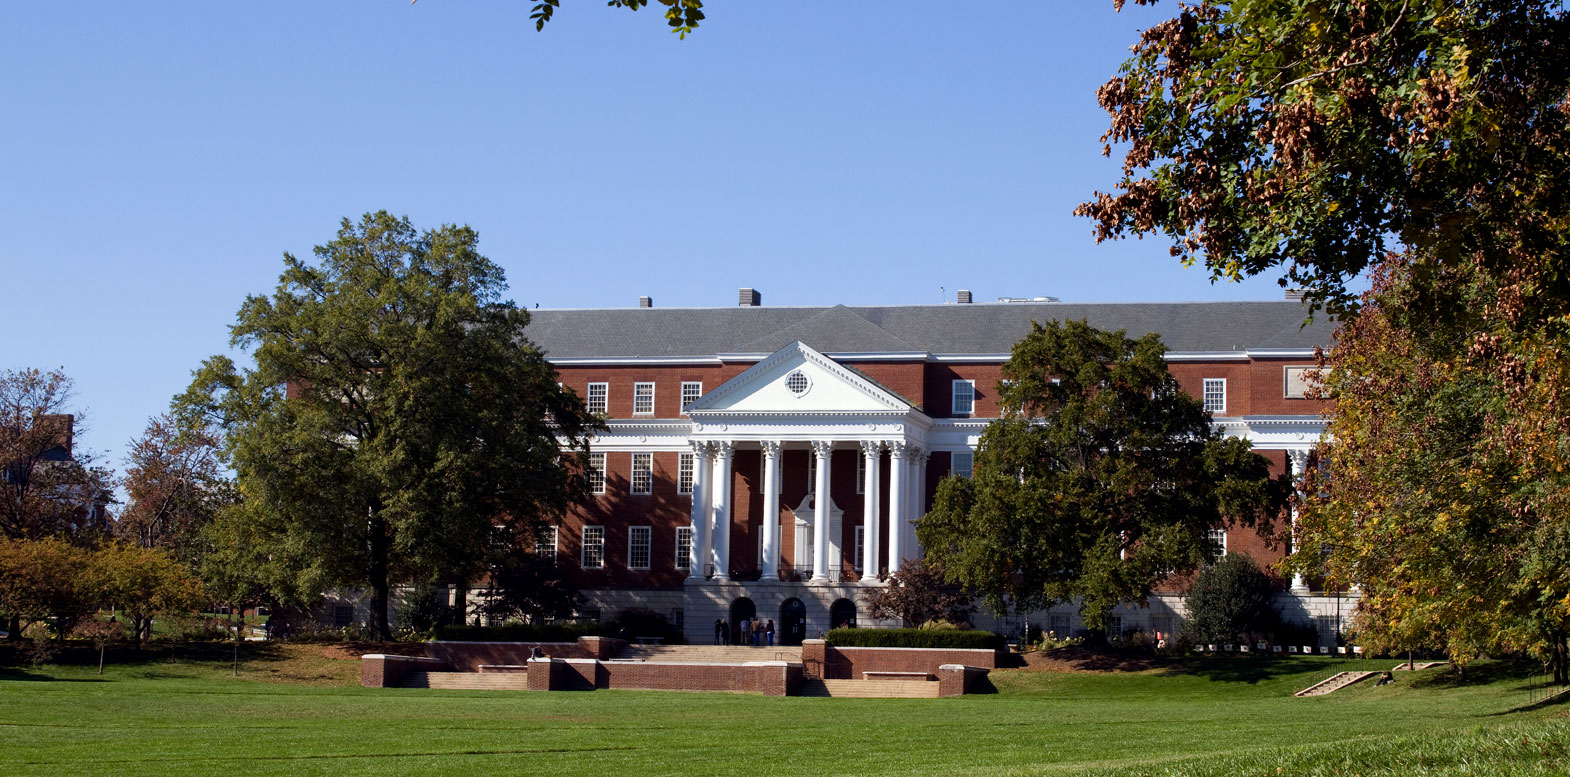 University of Maryland of College Park